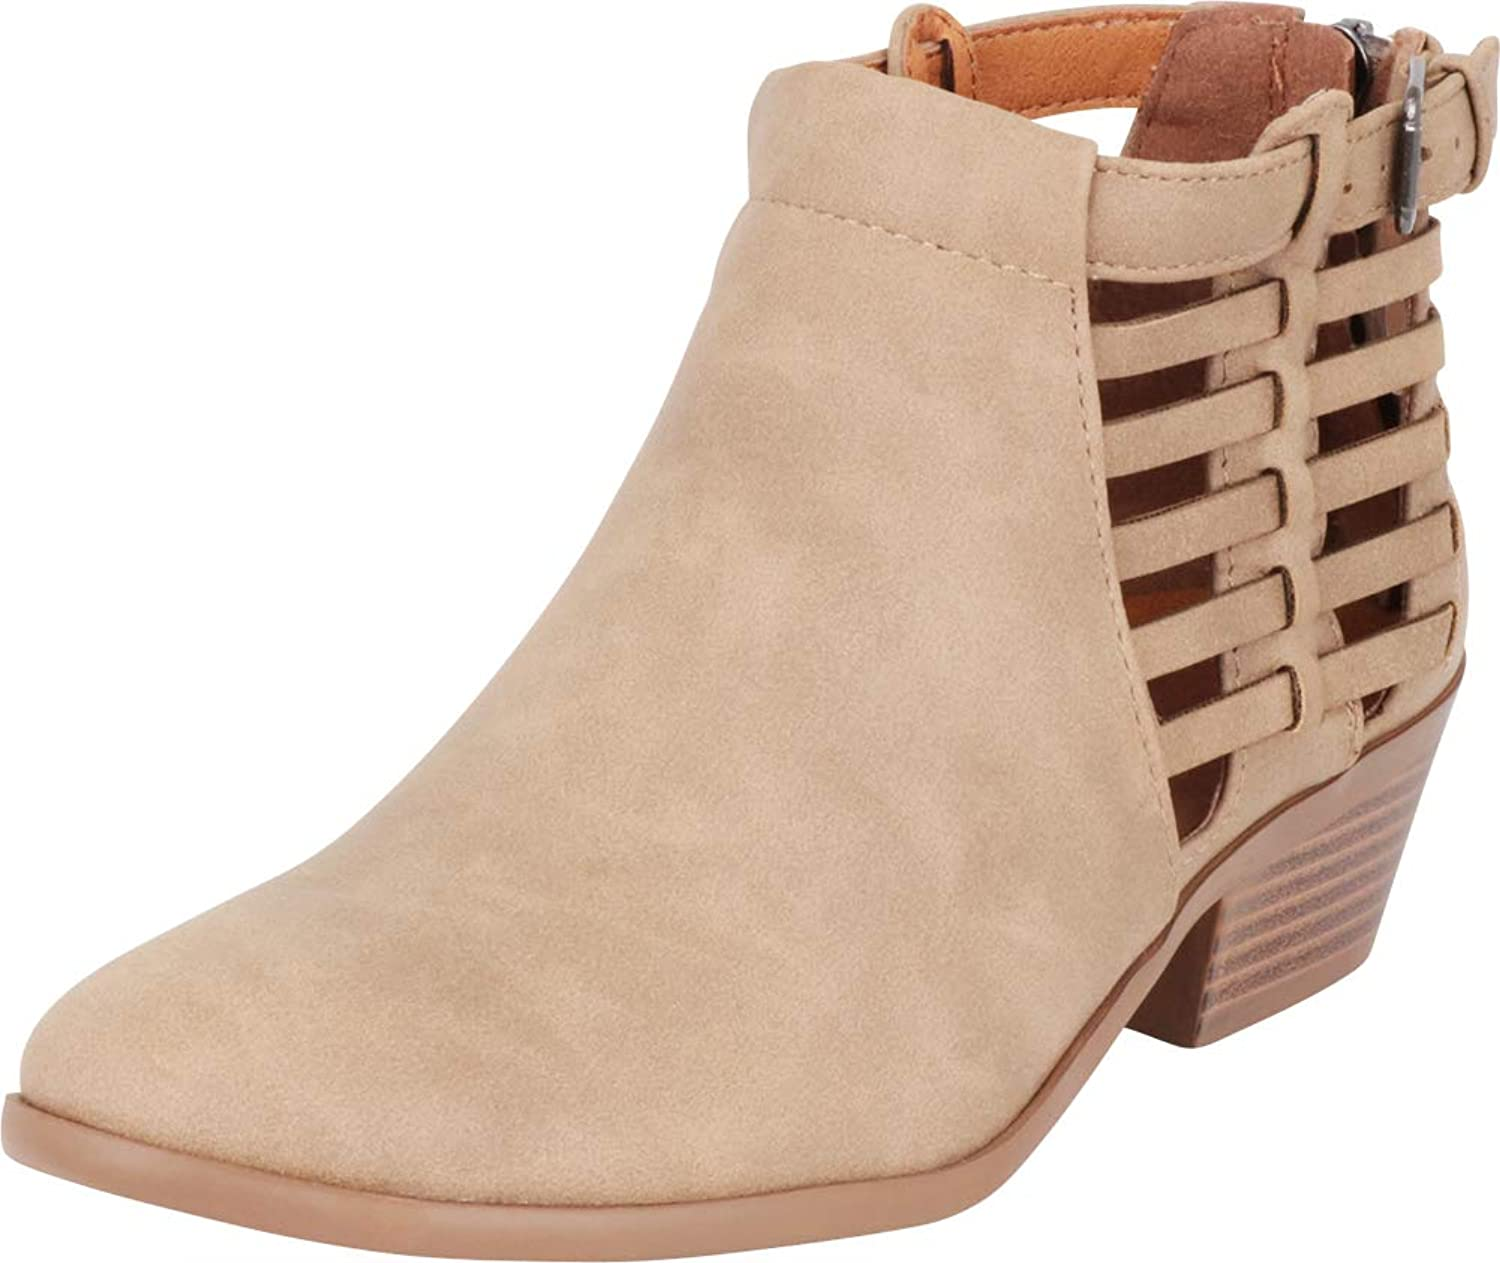 Cambridge Select Women's Strappy Buckle Cutout Caged Stacked Low Heel Ankle Bootie